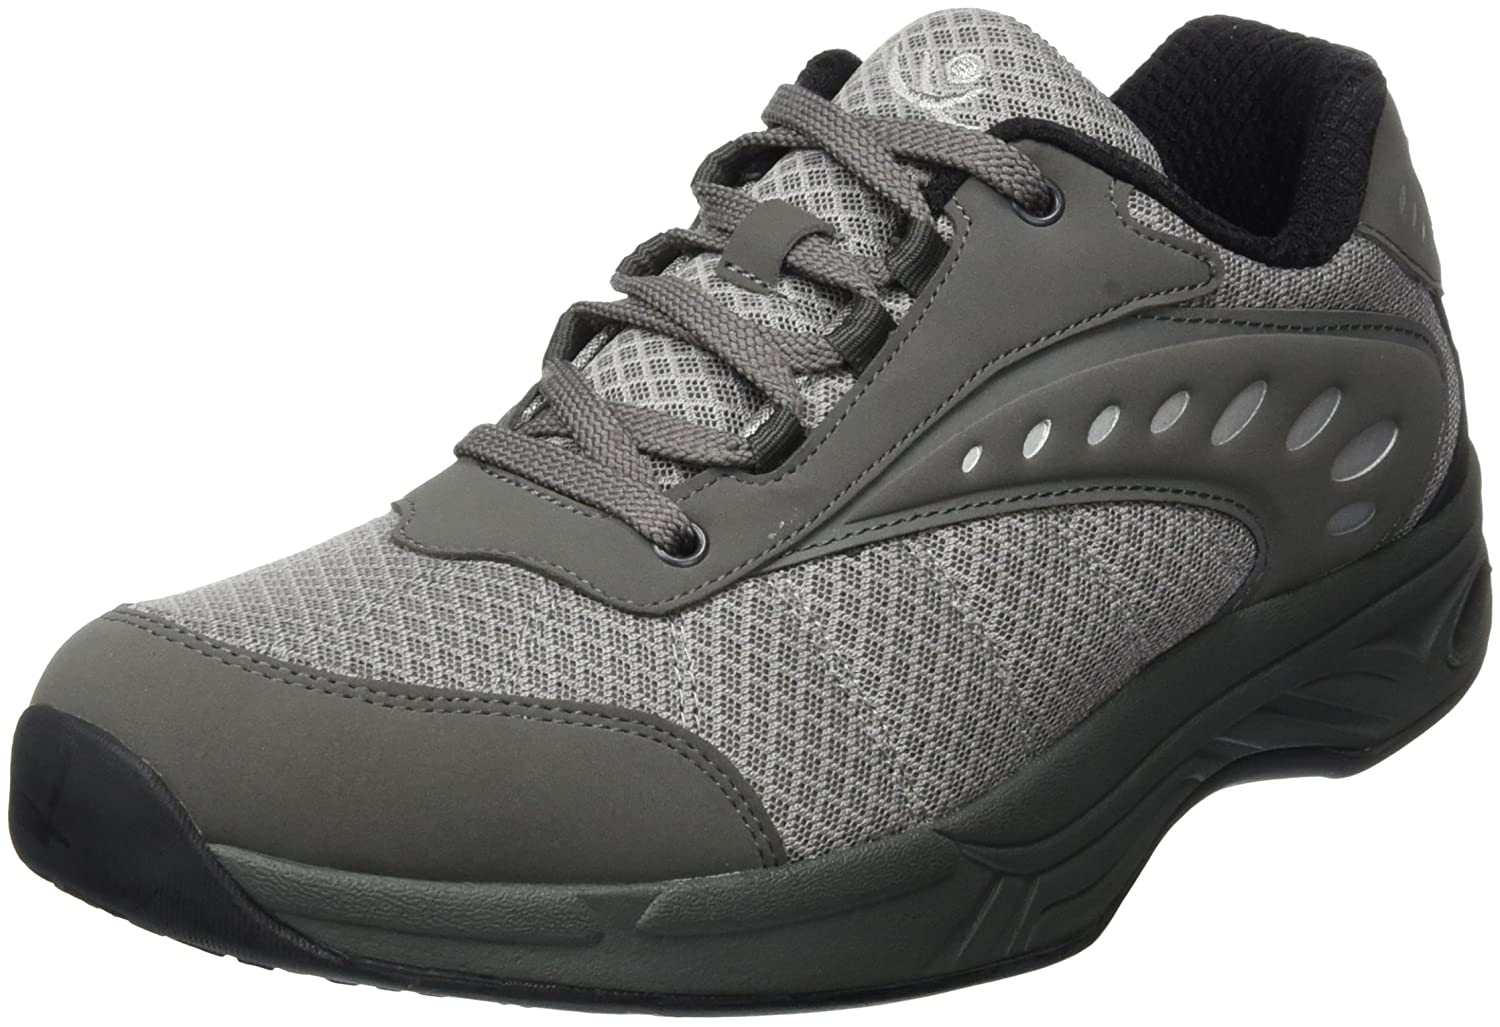 Men/'s Outdoor Fitness Shoes Chung Shi Comfort Step Sport Ii